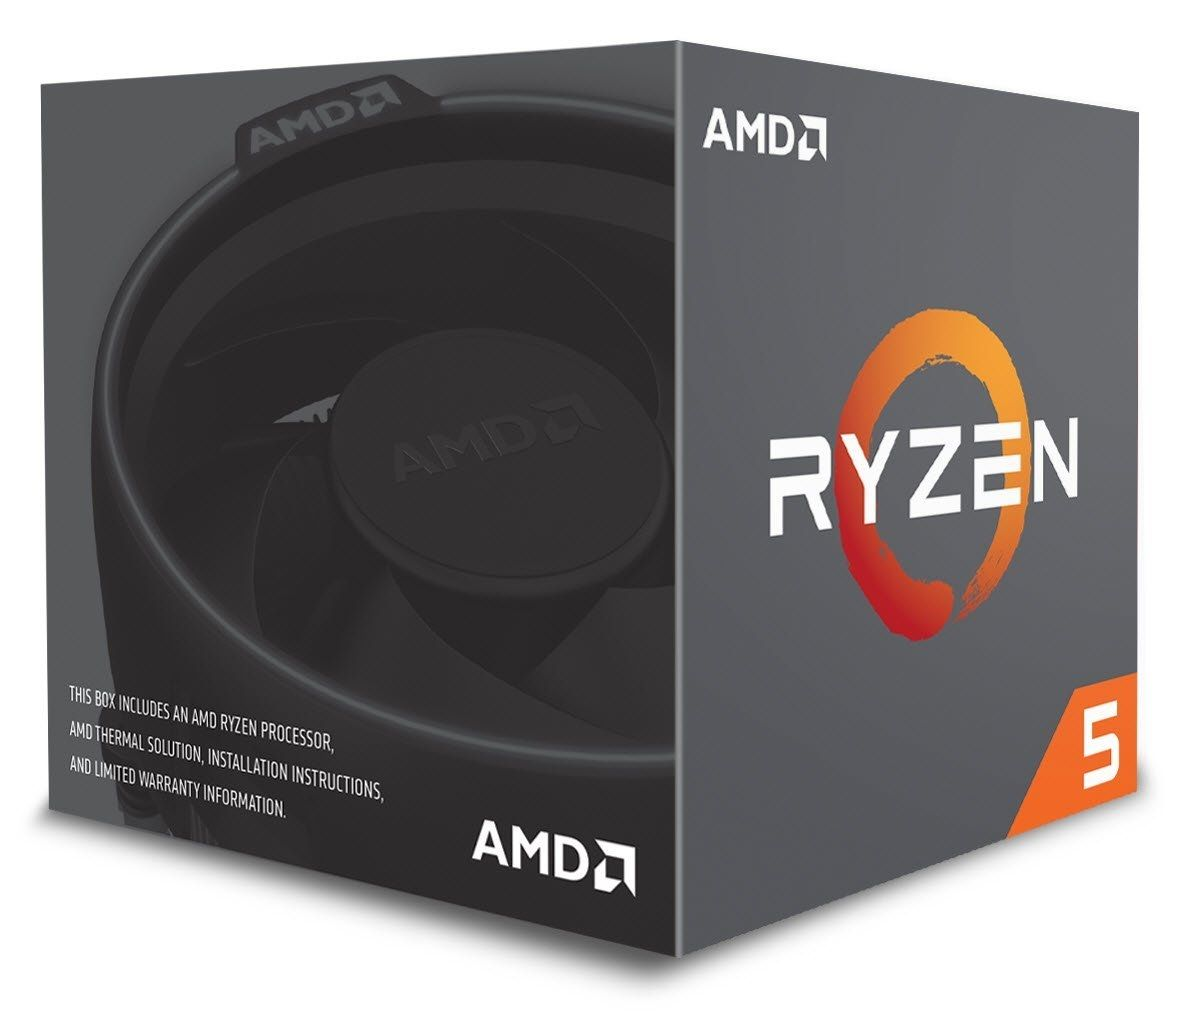 AMD CPU Desktop Ryzen 5 6C/12T 2600 (3.9GHz,19MB,65W,AM4) box, with Wraith Stealth cooler